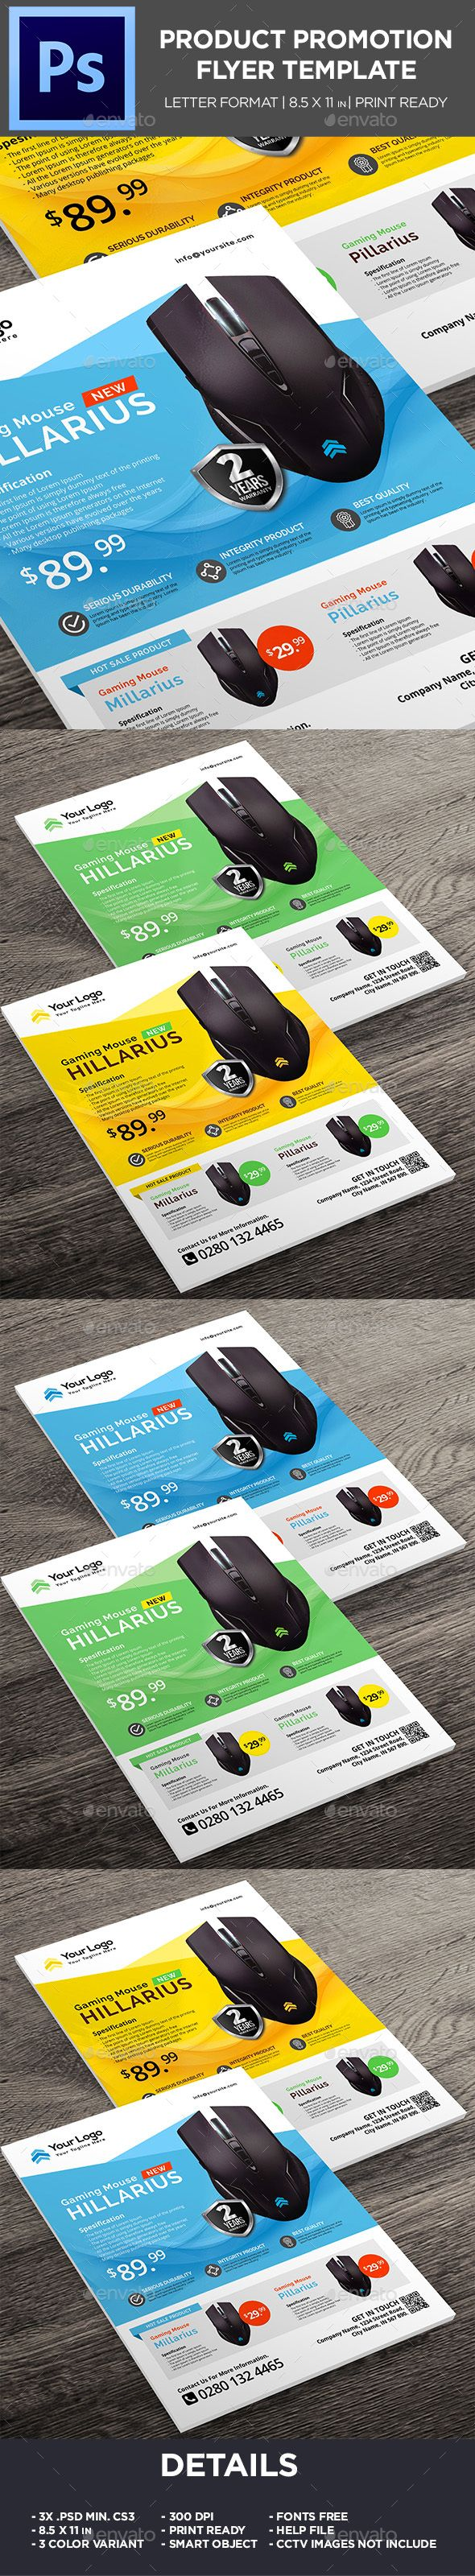 Mouse Gaming Product Flyer - Corporate Promotion Flyer